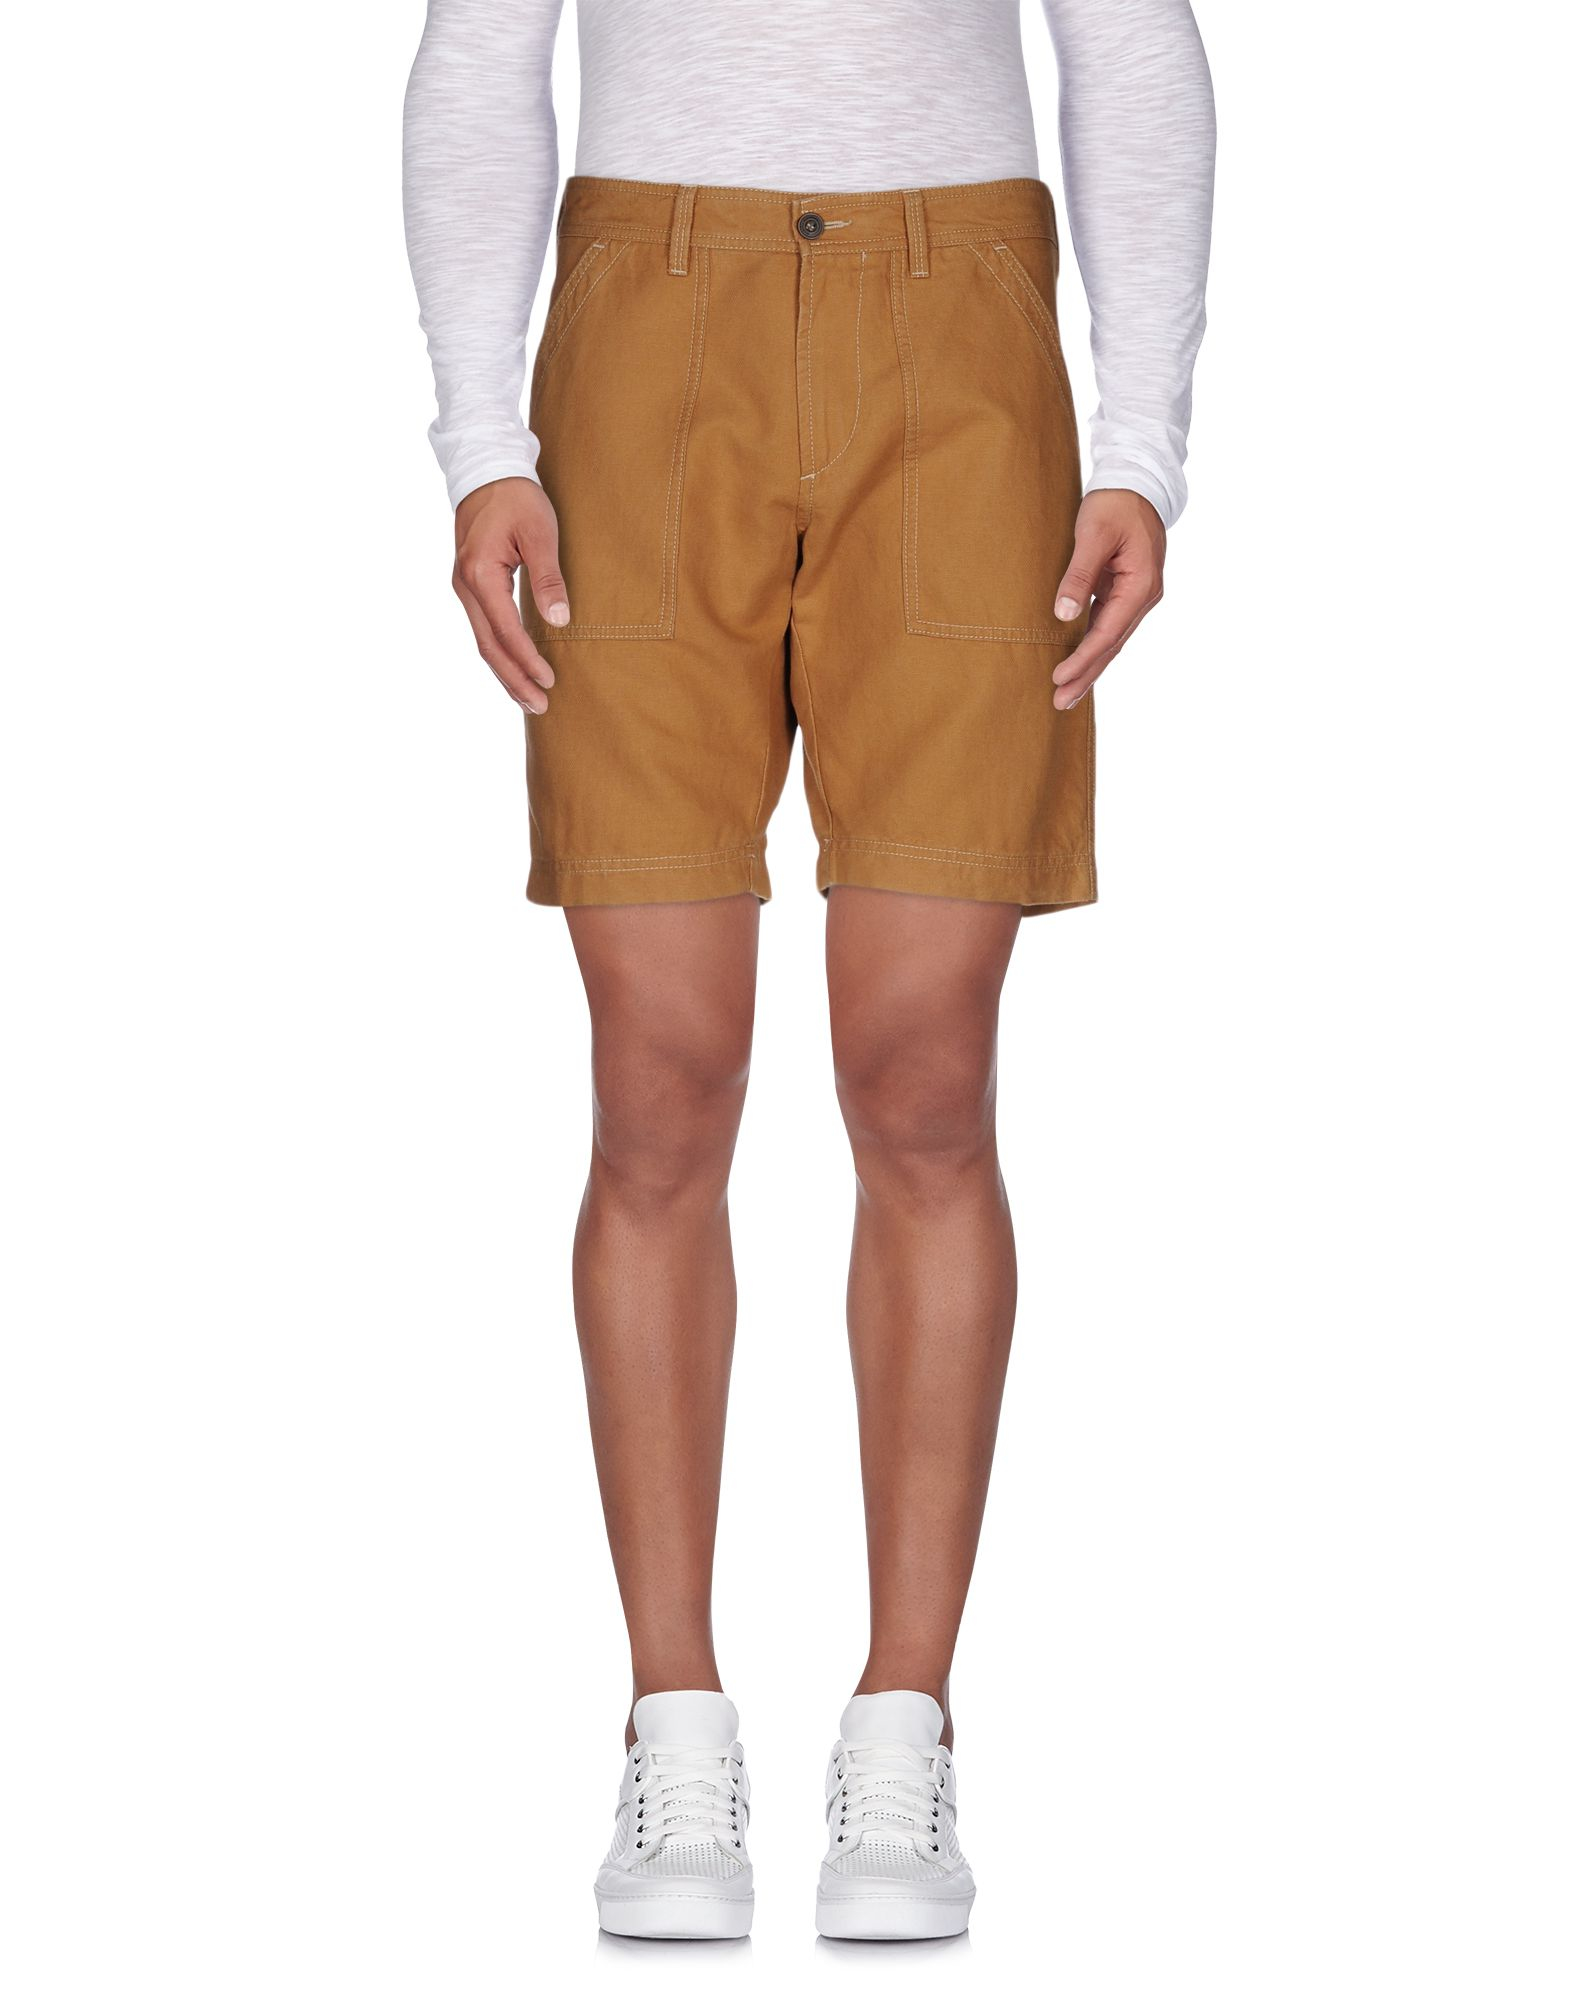 Marina Yachting Bermuda Shorts In Brown For Men Lyst